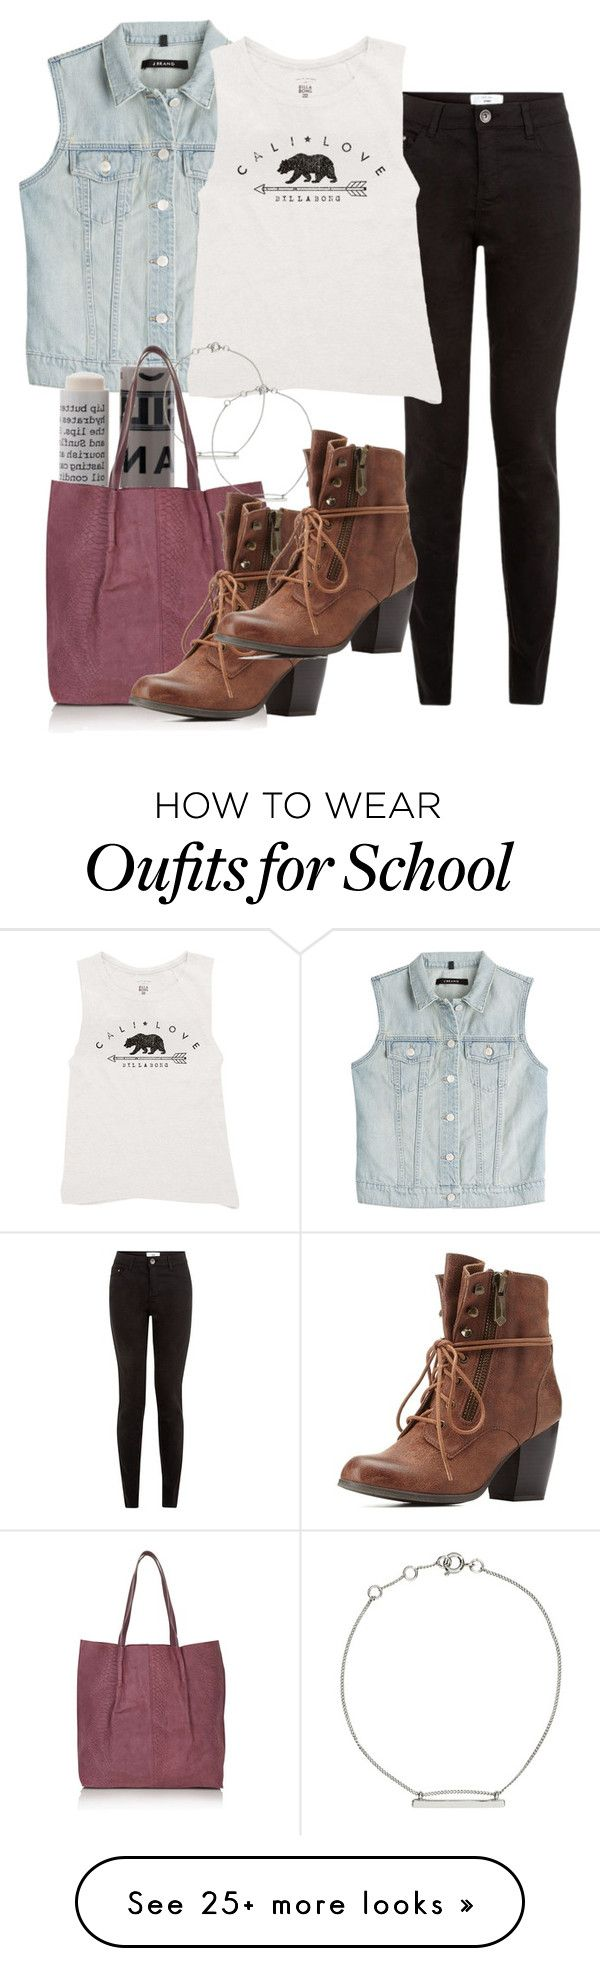 a54b4ce1154  u0026quot Kai inspired school outfit u0026quot  by tvdstyleblog on Polyvore  featuring J Brand